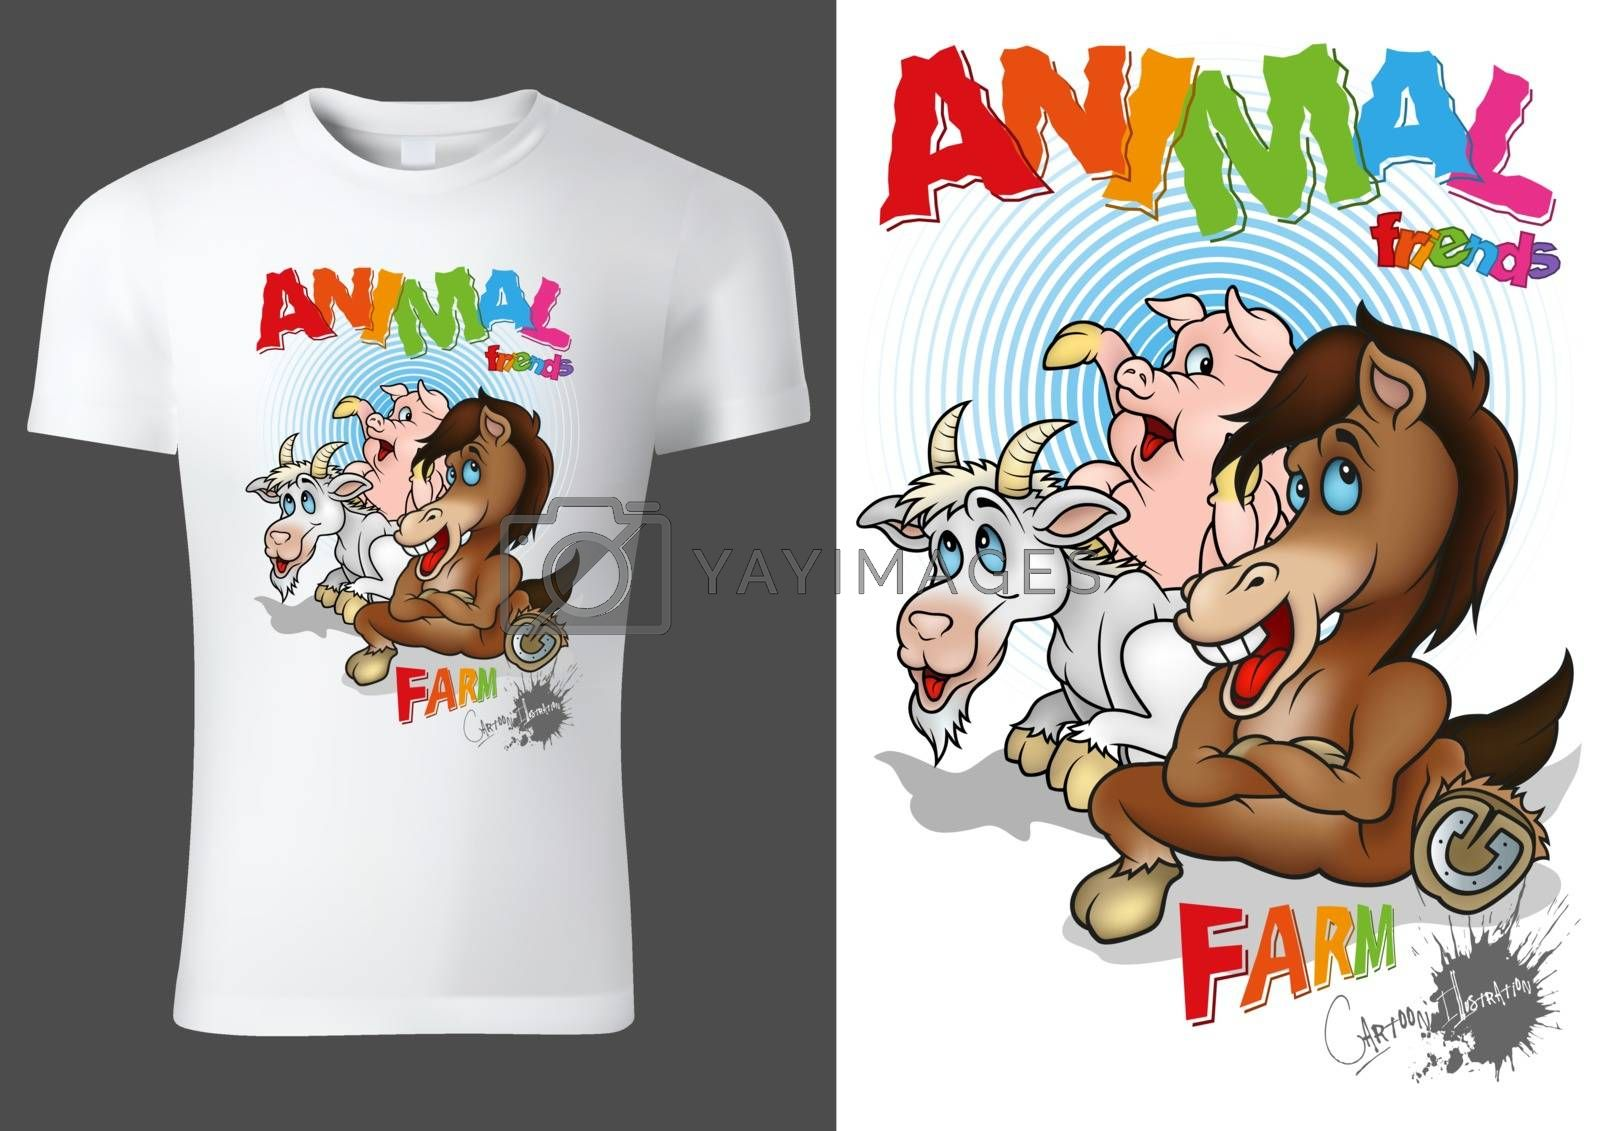 White Child T-shirt Design with Cartoon Farm Animal Characters - Cheerful Unisex Illustration with Horse,Goat and Pig, Vector